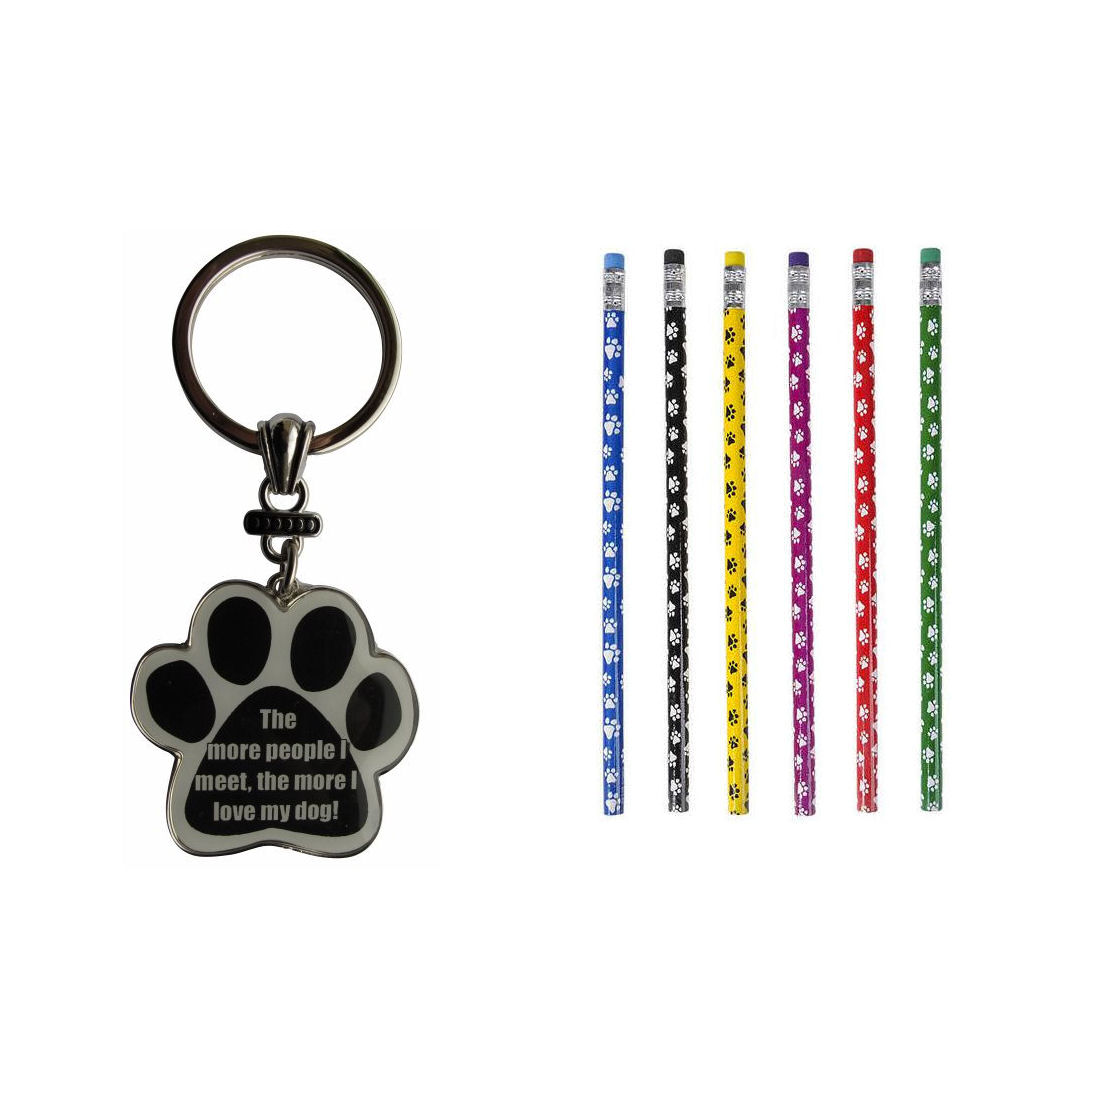 Bundle 2 Items: One (1) The more people I meet, the more I love my dogs! Paw Print Keychain and a Lot of Twelve (12) Paw Print Pencils